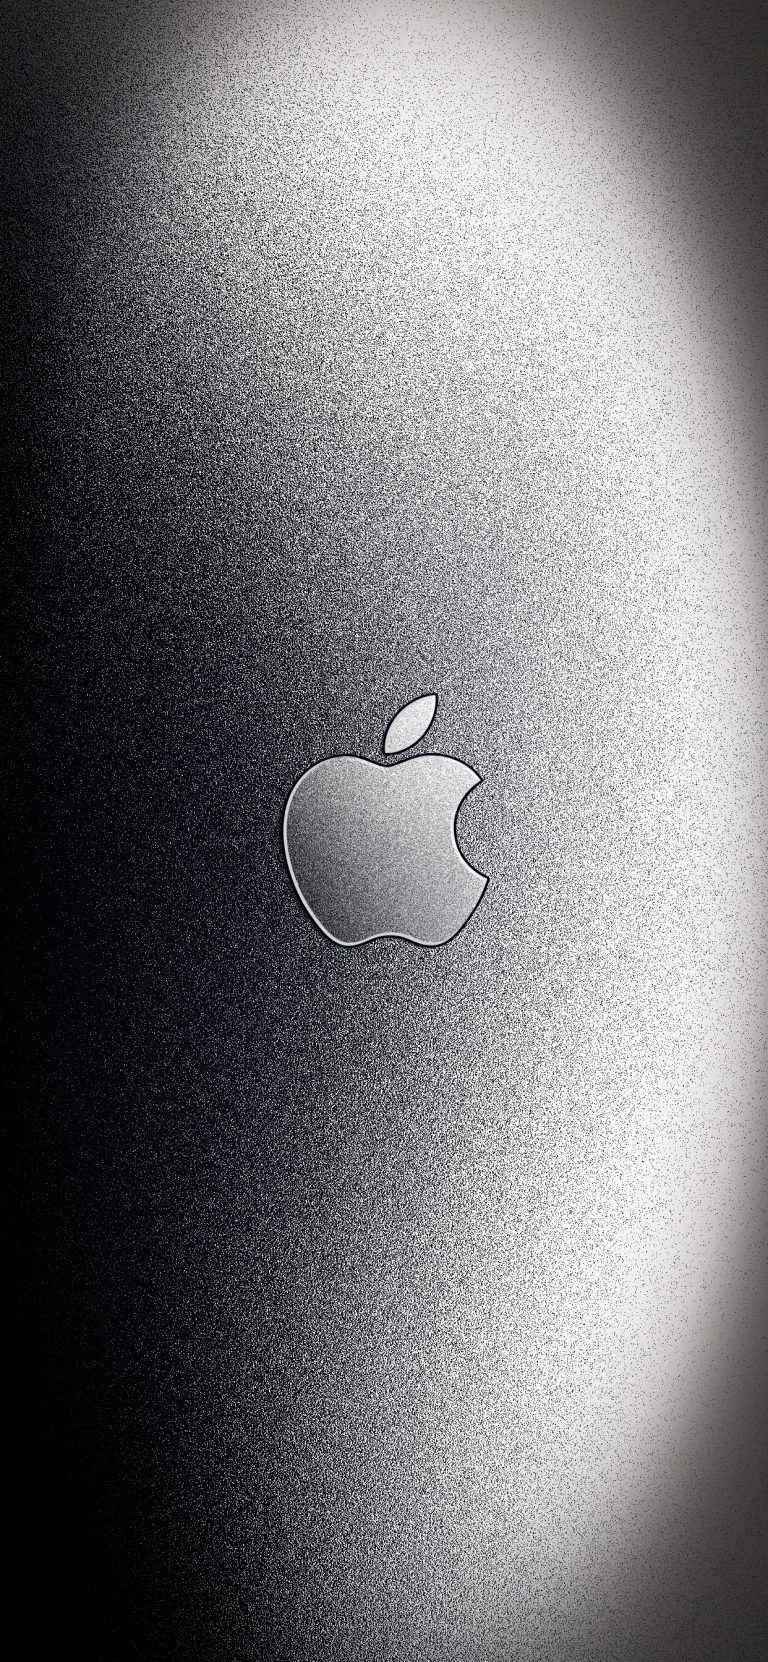 V3 With Apple Logo Iphone Xs Max Wallpaper Ar72014 Apple Logo Wallpaper Apple Iphone Wallpaper Hd Apple Wallpaper